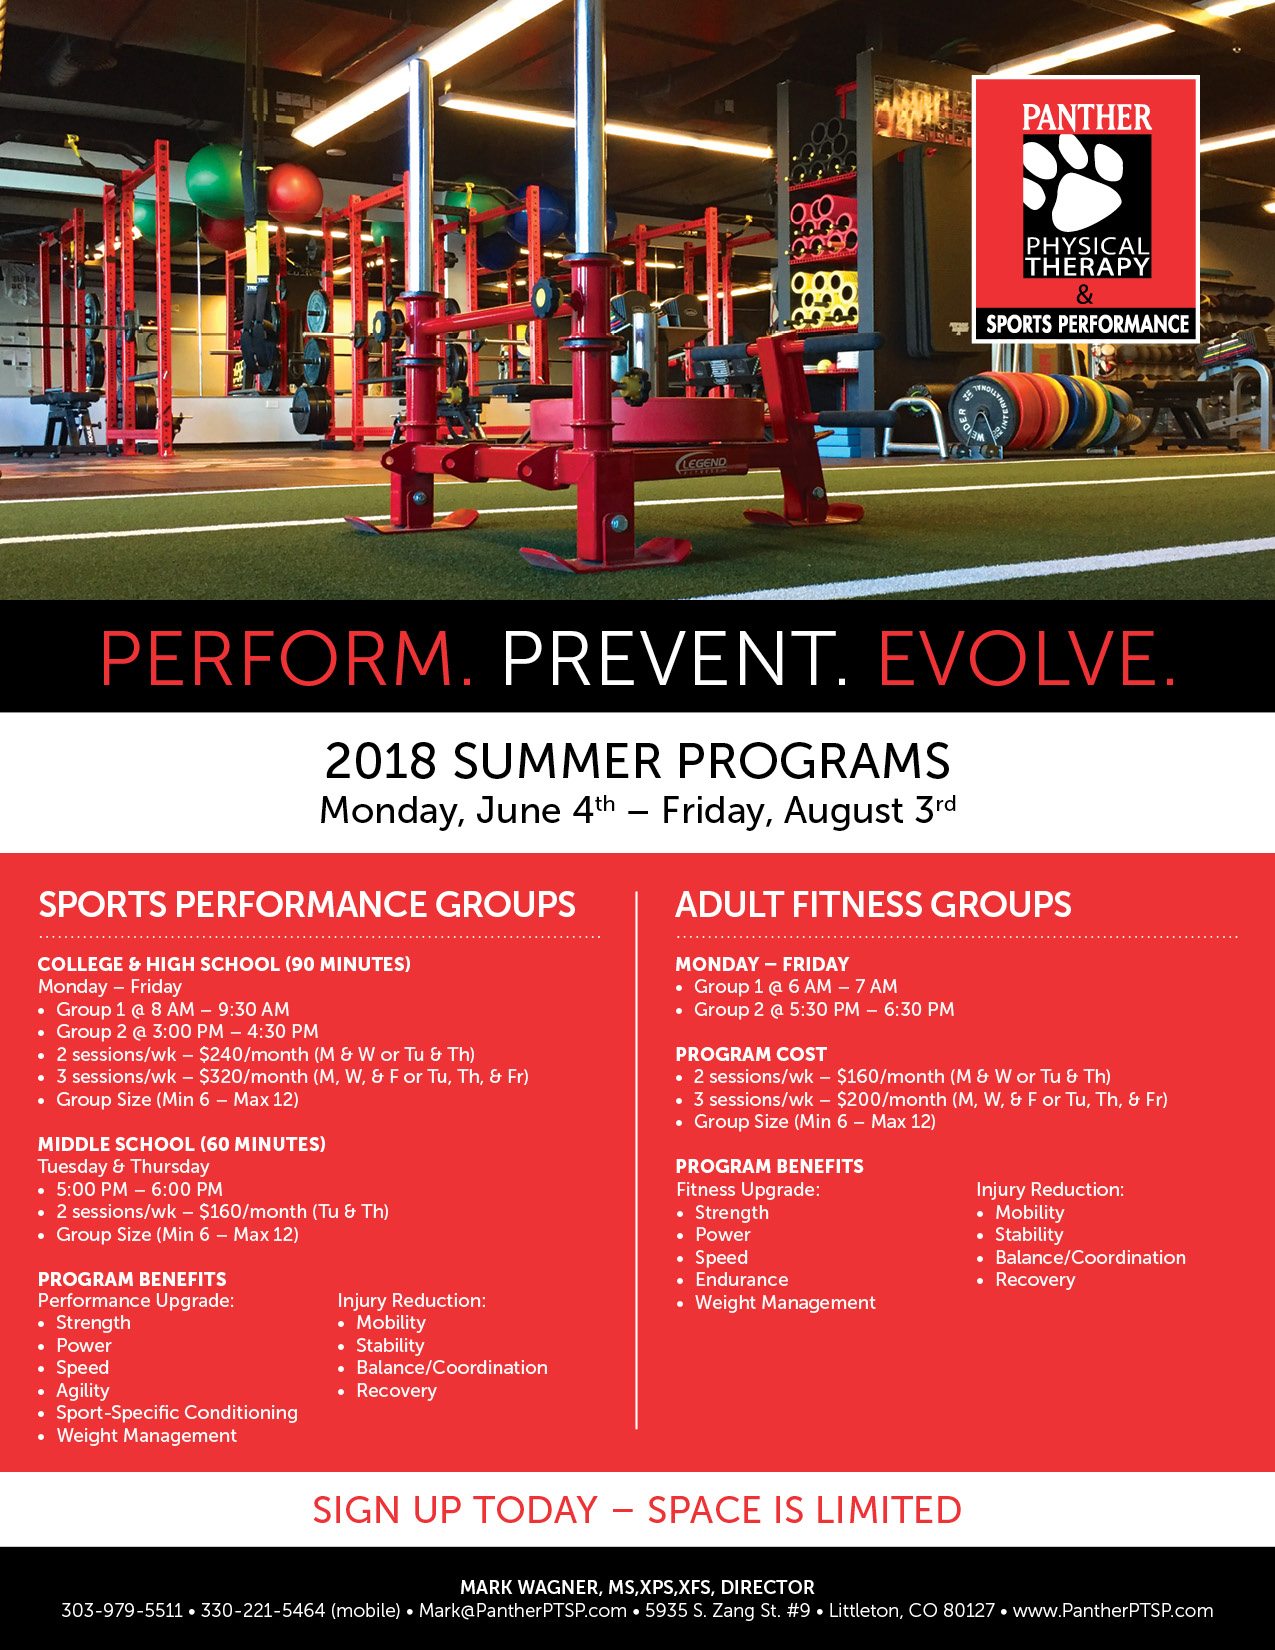 panther-sp_summer-programs_2018